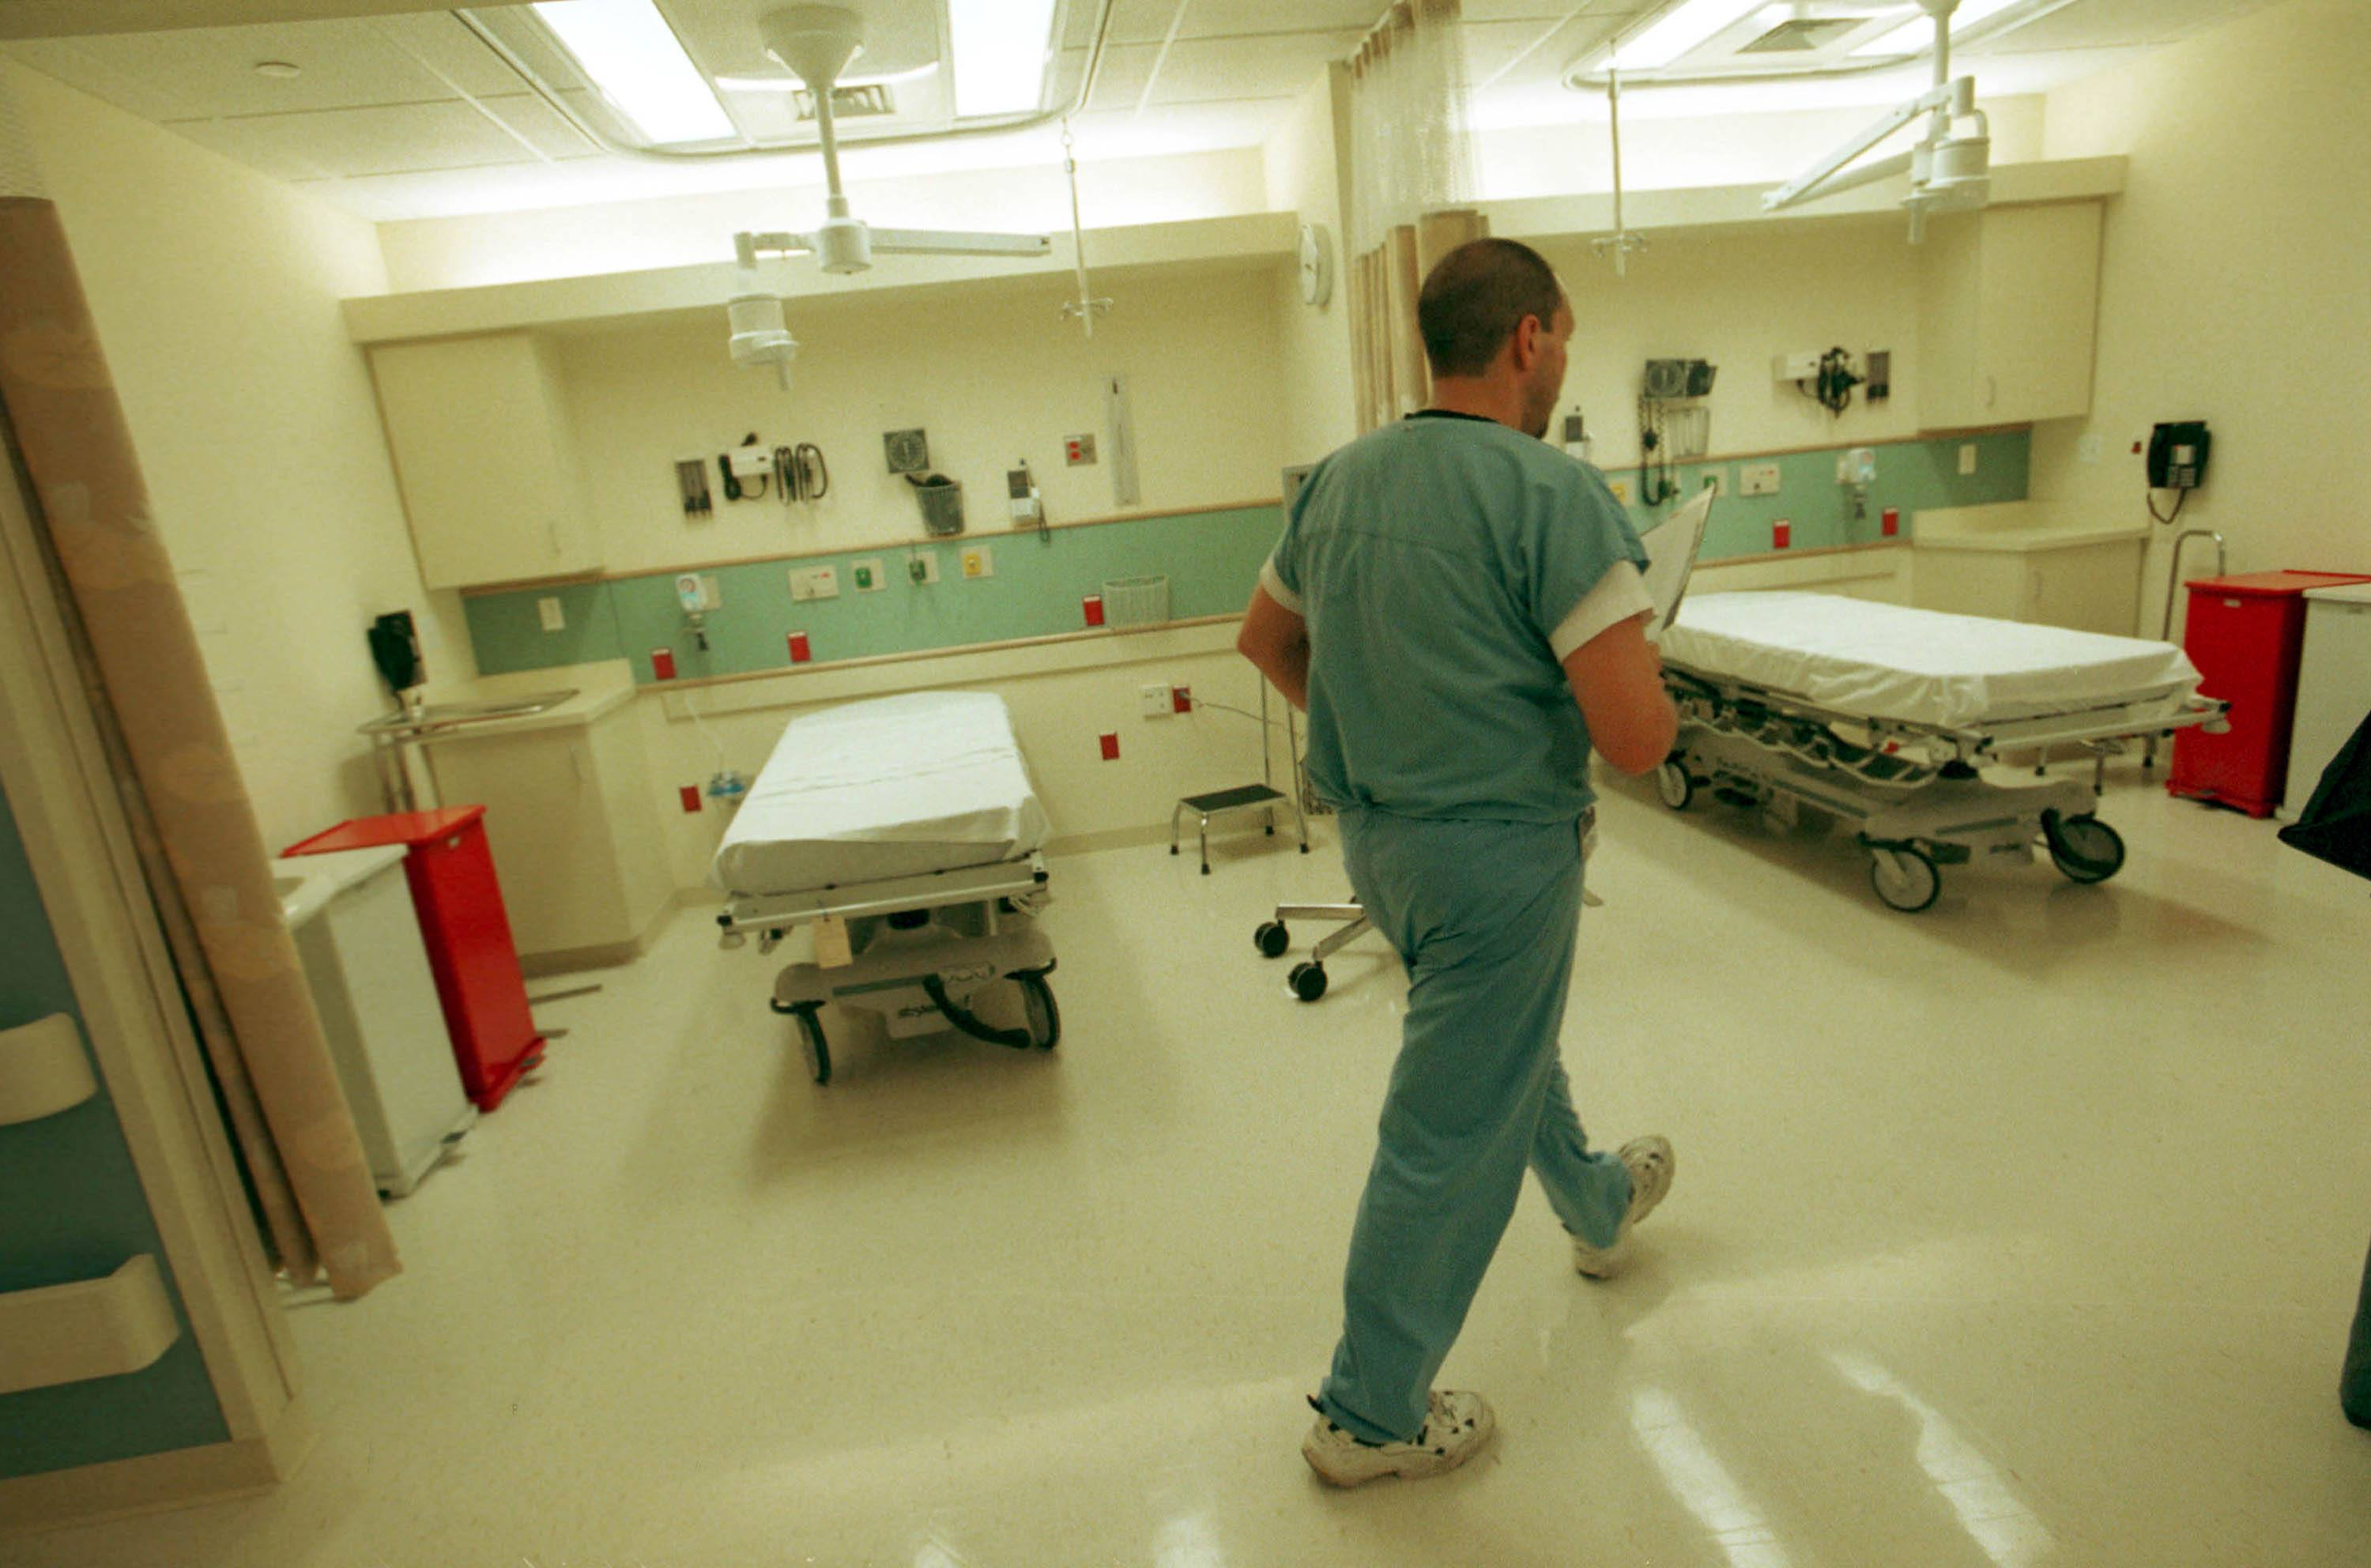 An emergency room nurse walks through a hospital unit